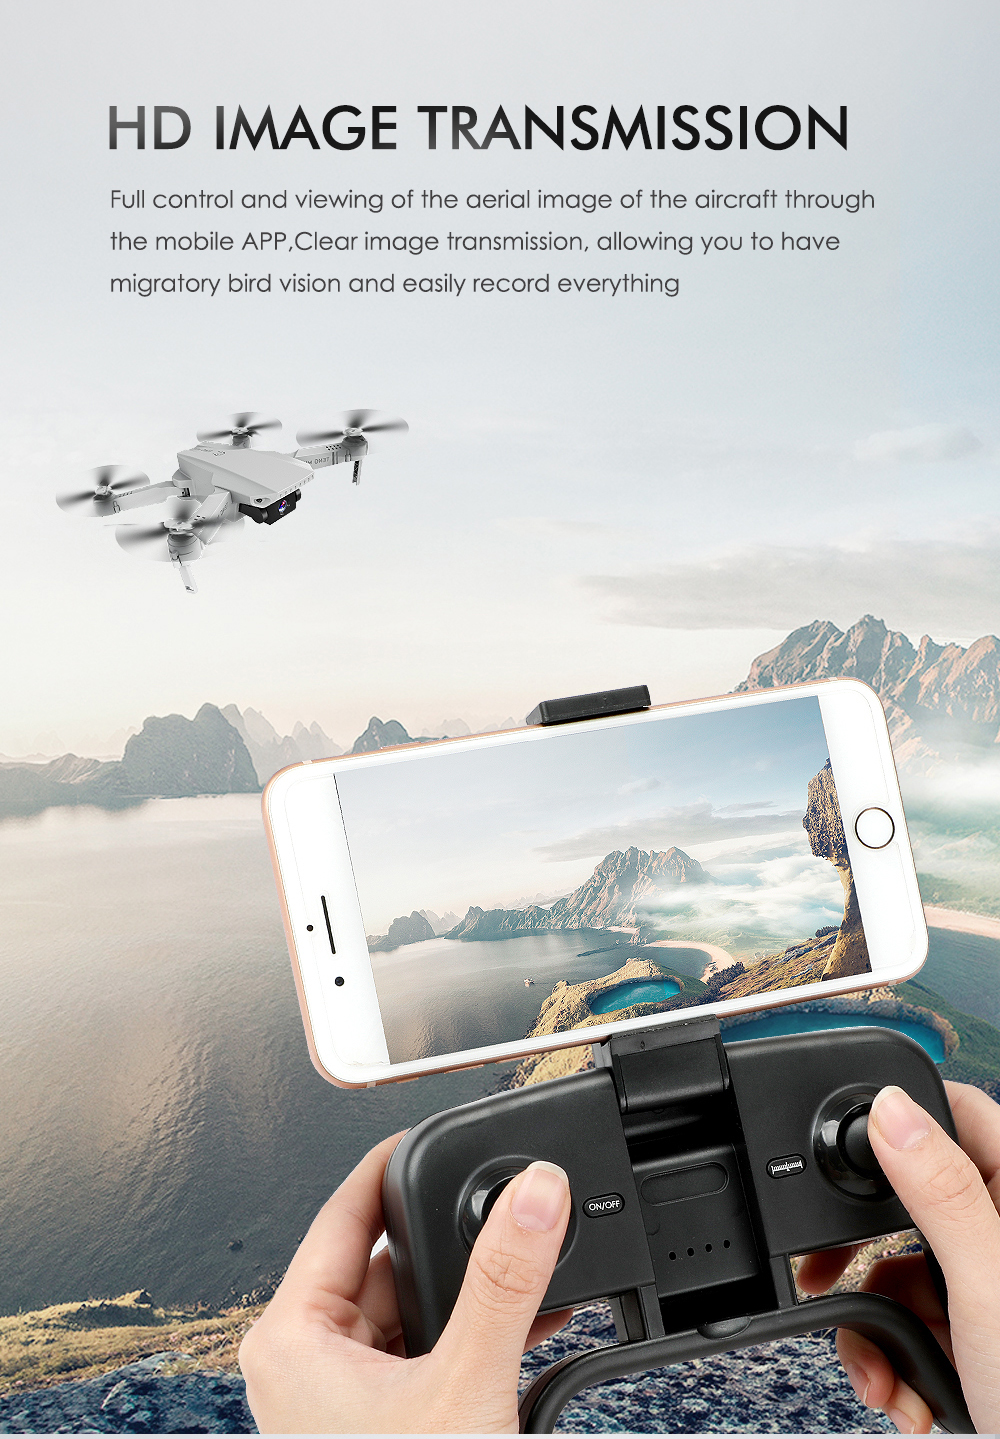 KF609 Folding Drone Dual Camera High-definition Gesture Shooting Aerial Photography Quadcopter RC Toy- White 720P+Storage Bag